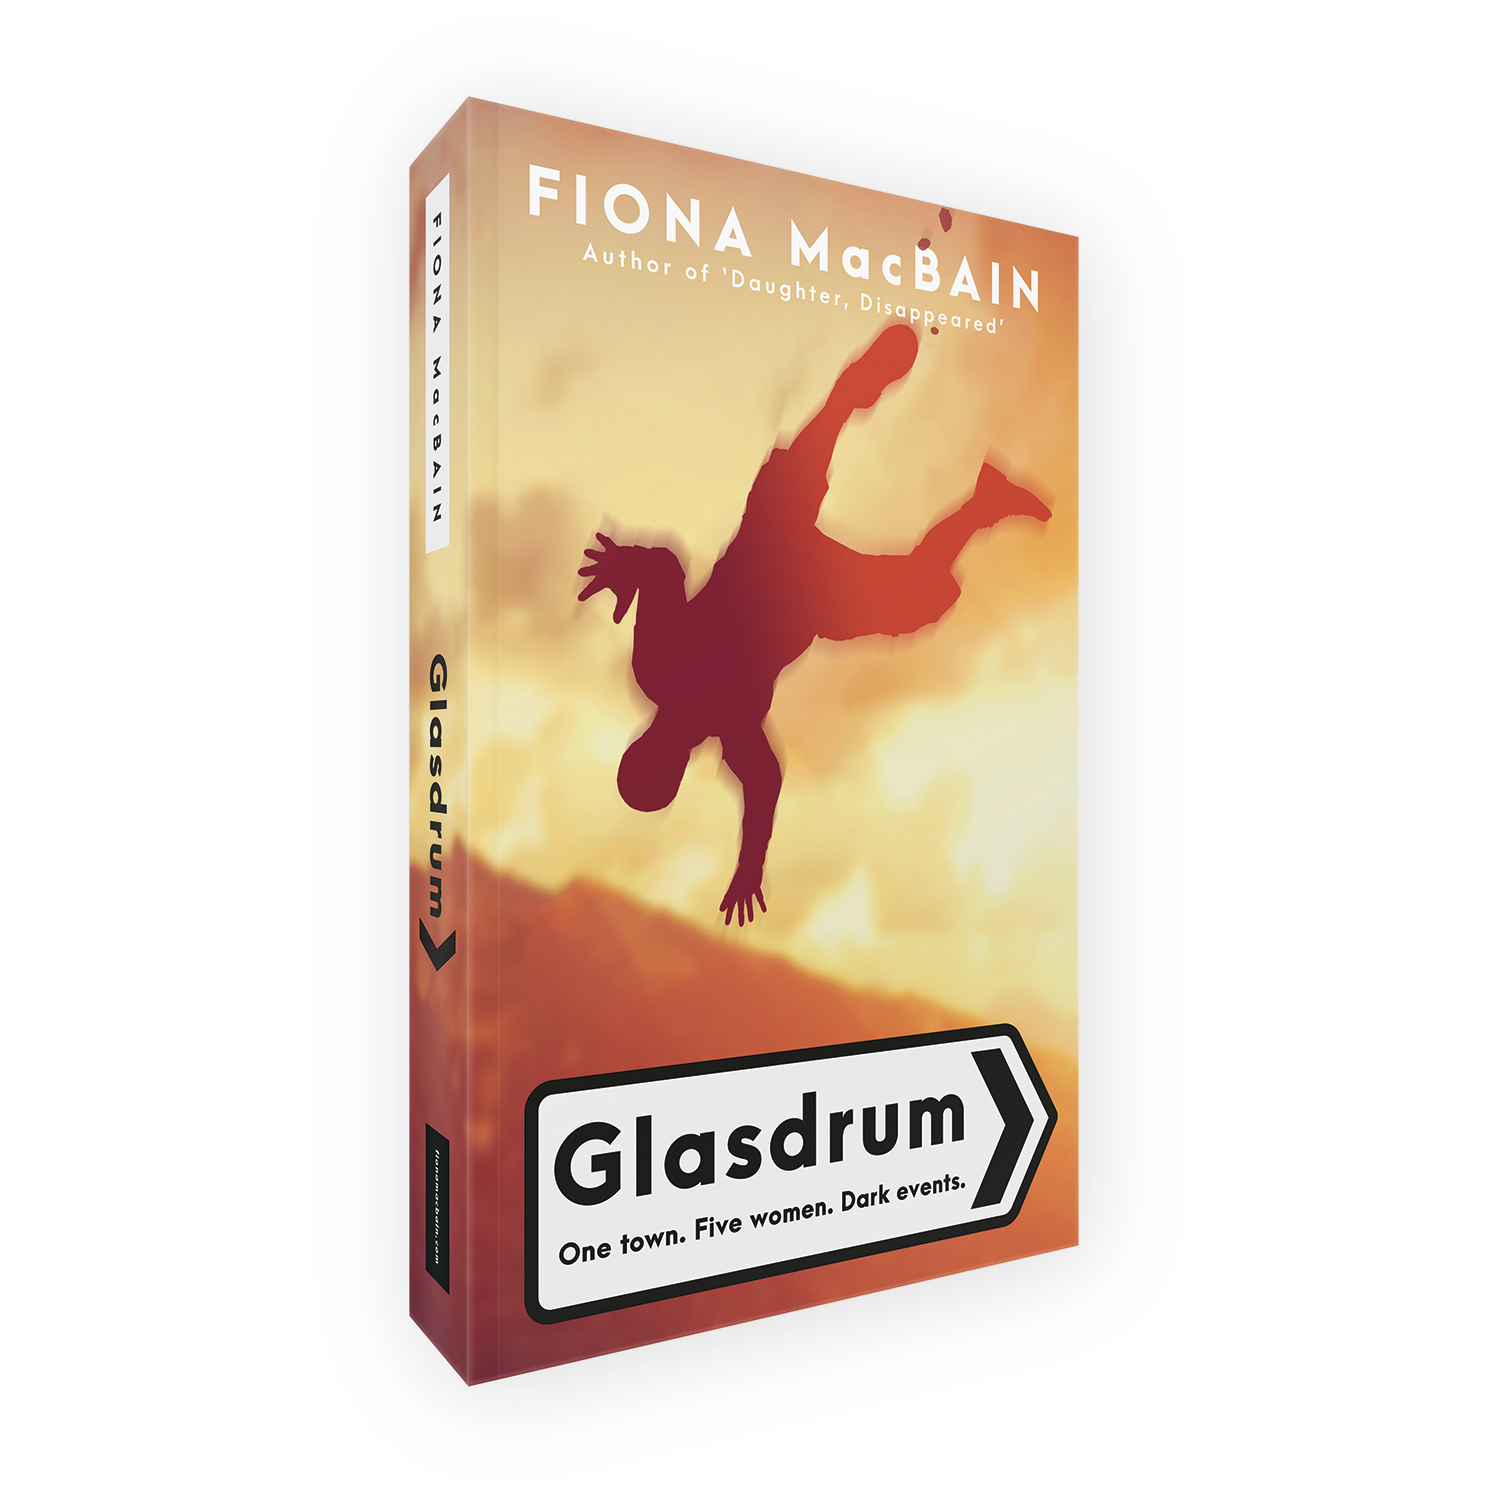 'Glasdrum' is a darkly-humoured thriller, set in the Highlands of Scotland, by author Fiona MacBain. The book cover & interior were designed by Mark Thomas, of coverness.com. To find out more about my book design services, please visit www.coverness.com.